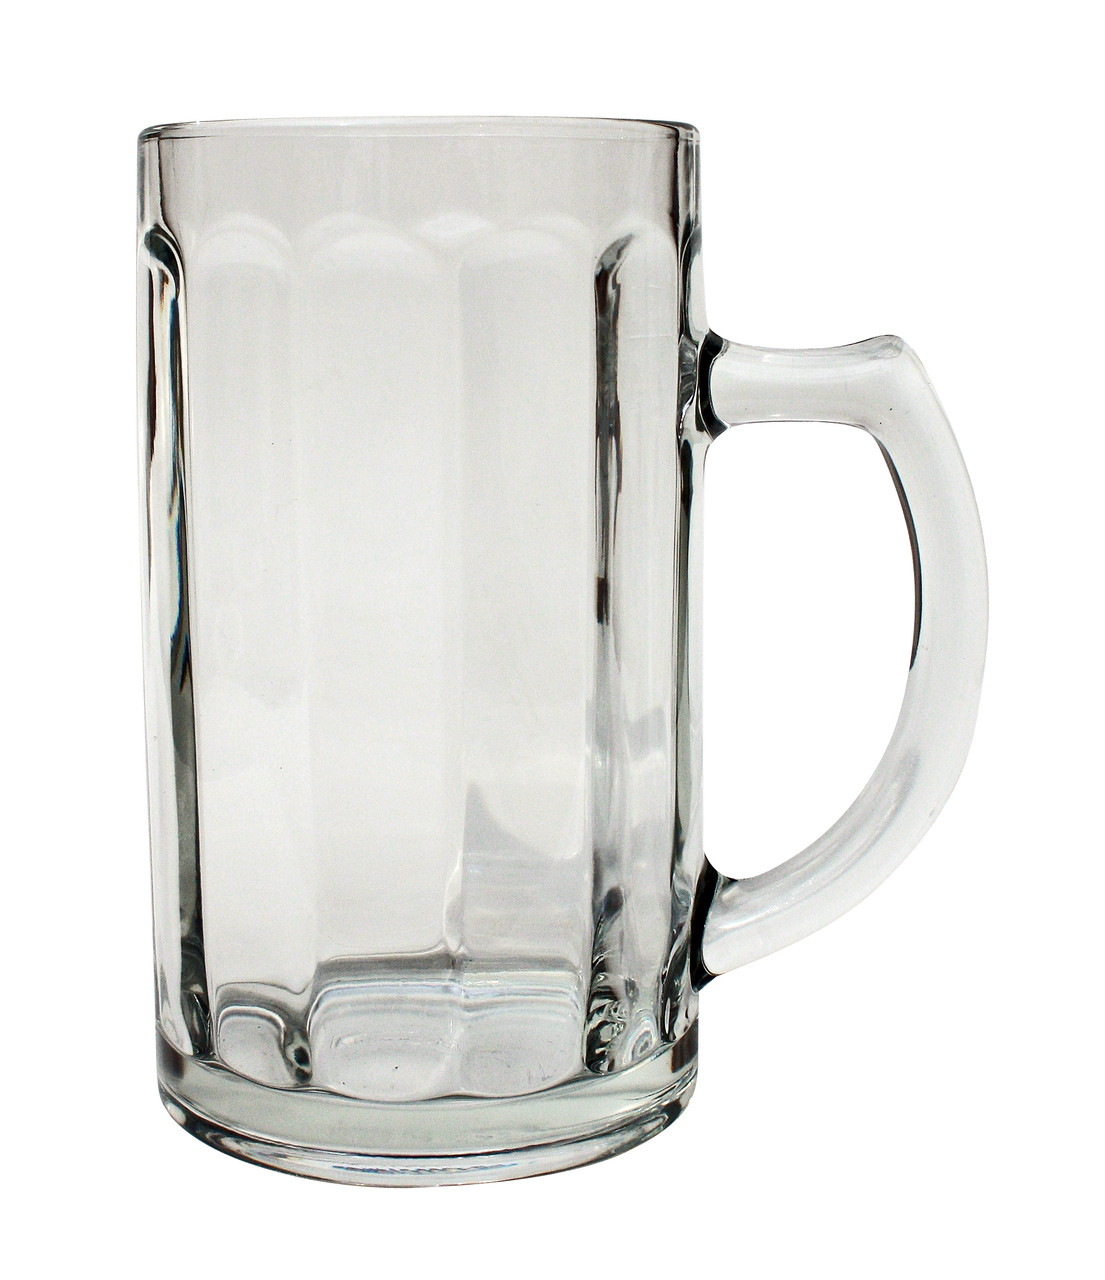 Authentic German Beer Stein with Handle